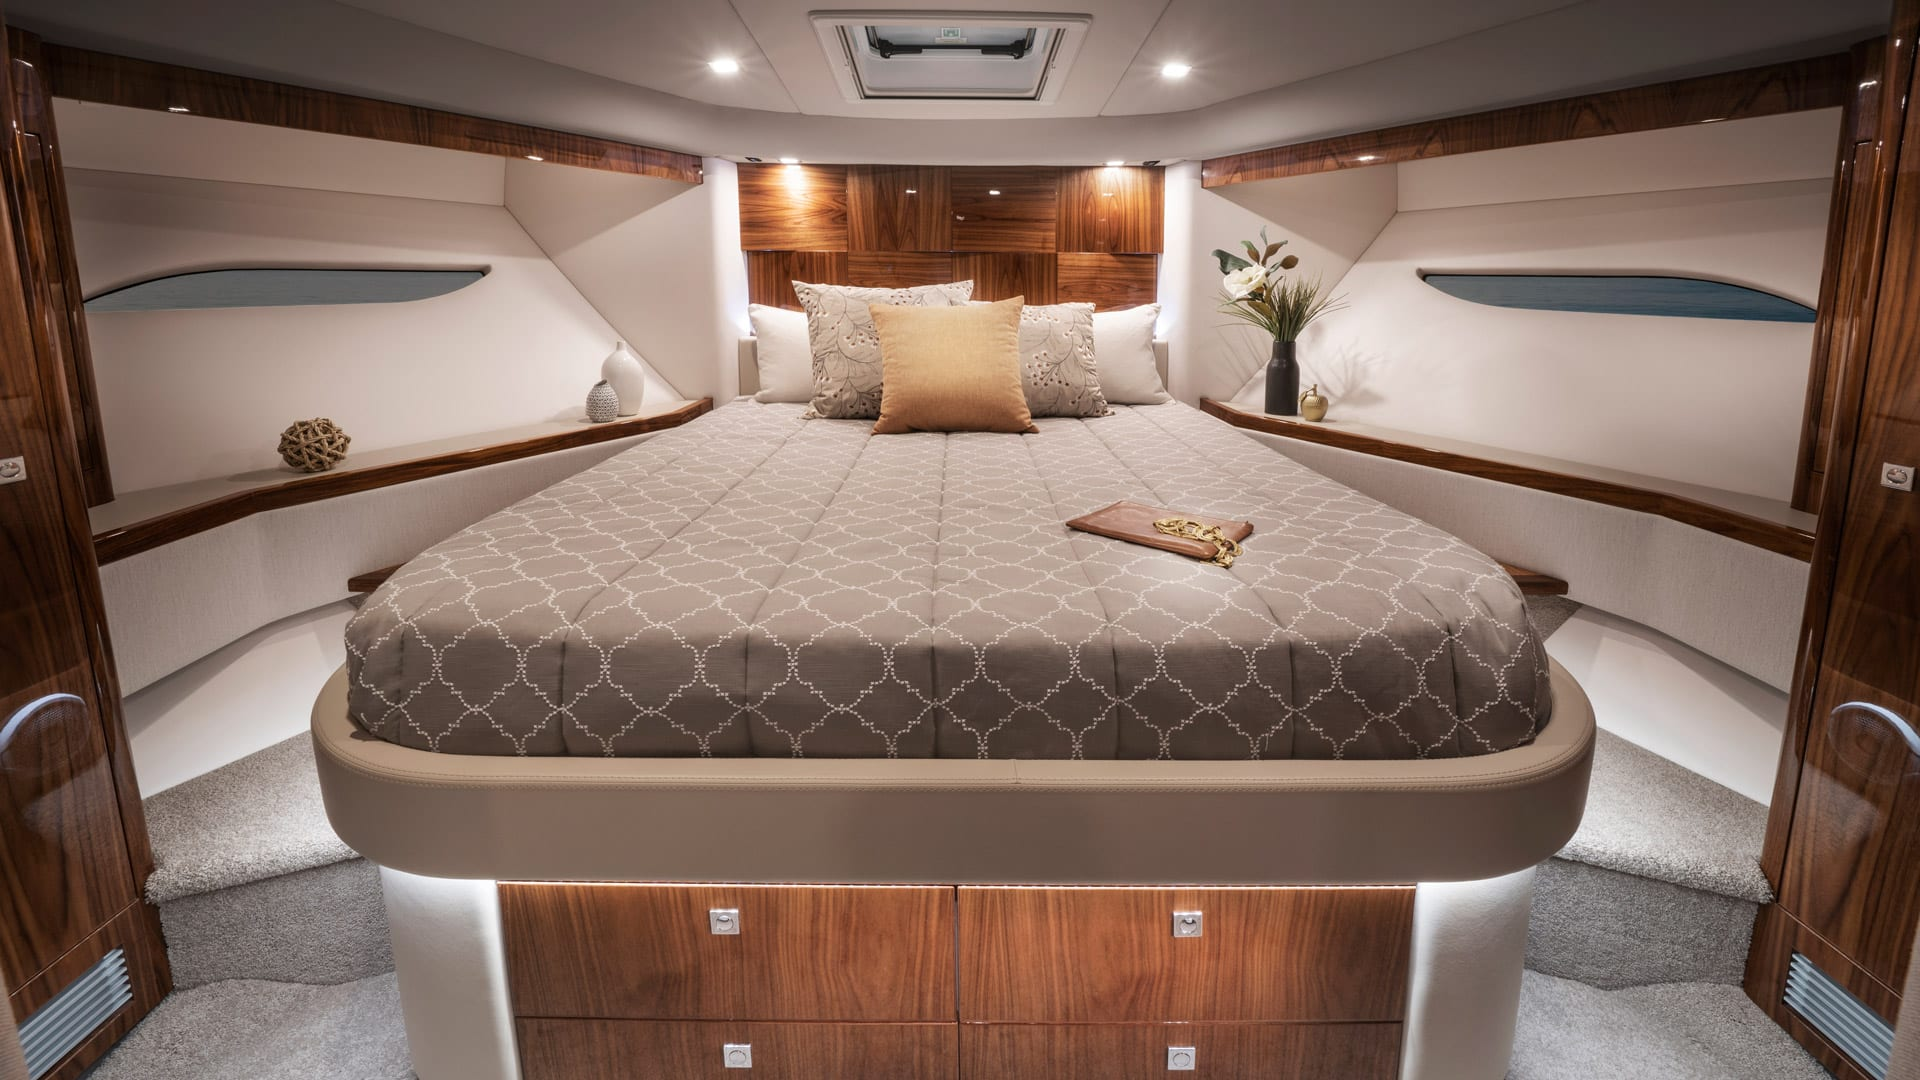 Riviera 6000 Sport Yacht Platinum Edition Forward VIP Stateroom 01 – Gloss Walnut Timber Finish